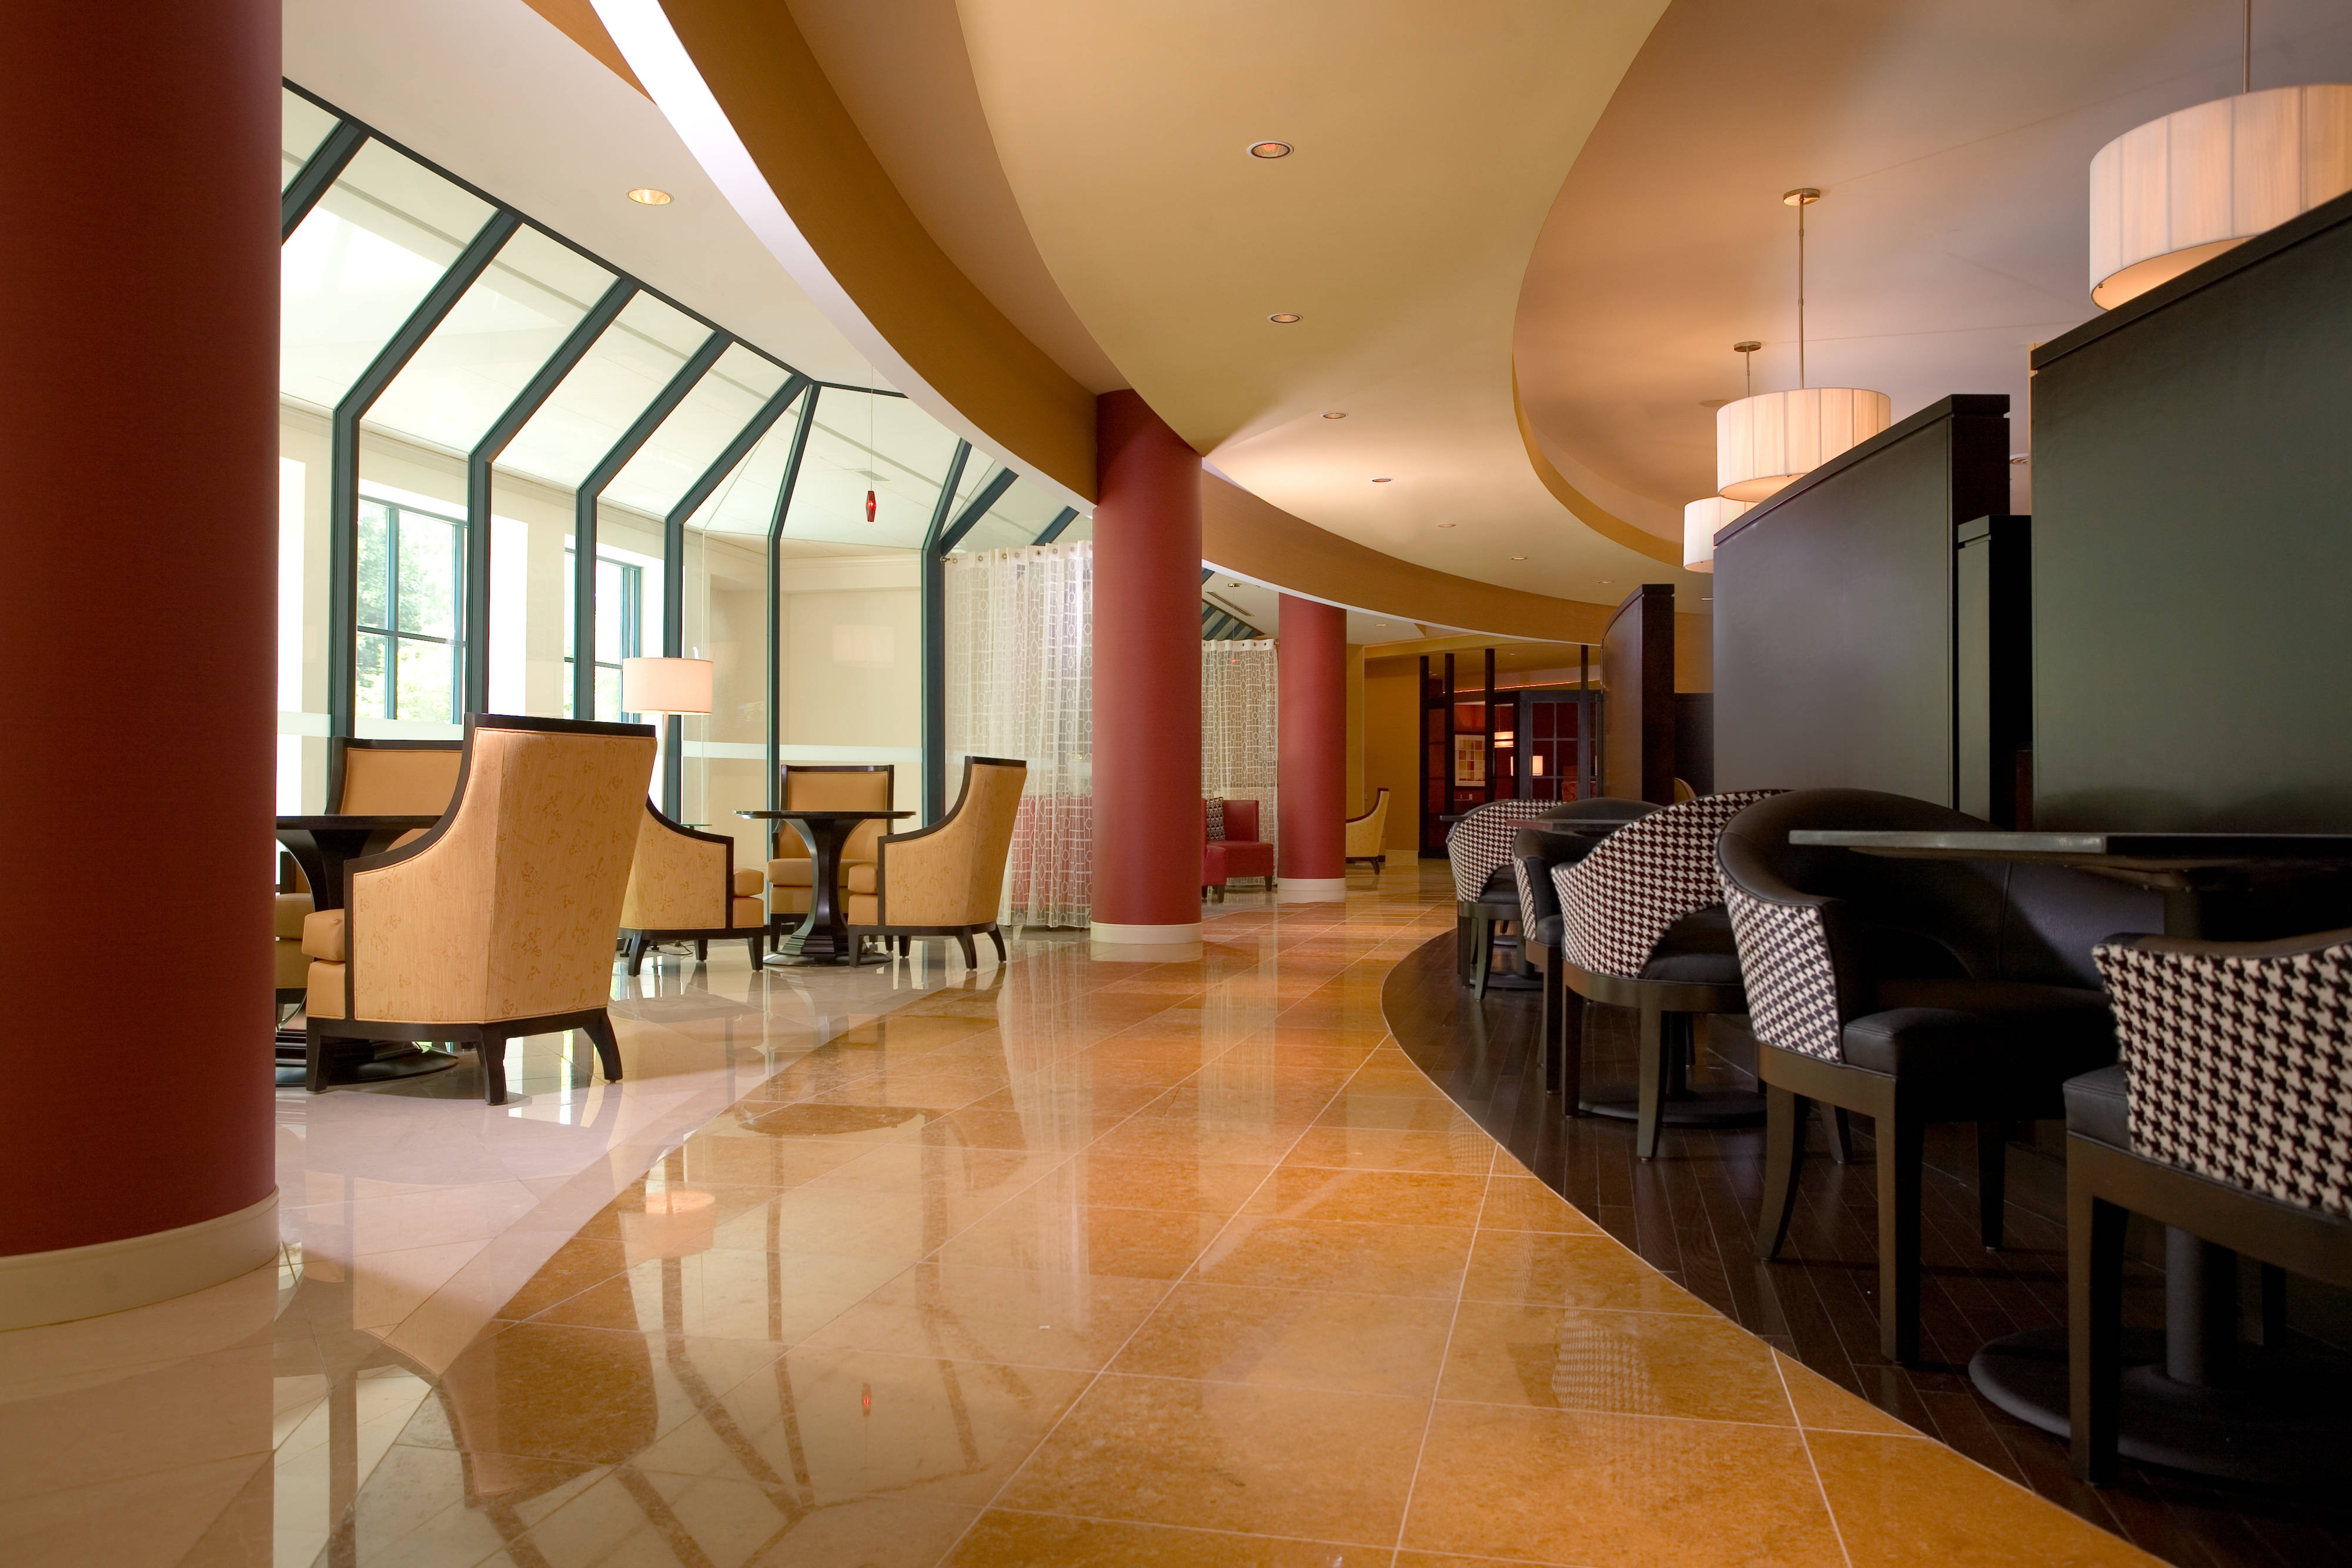 FairfaxVirginia business hotels